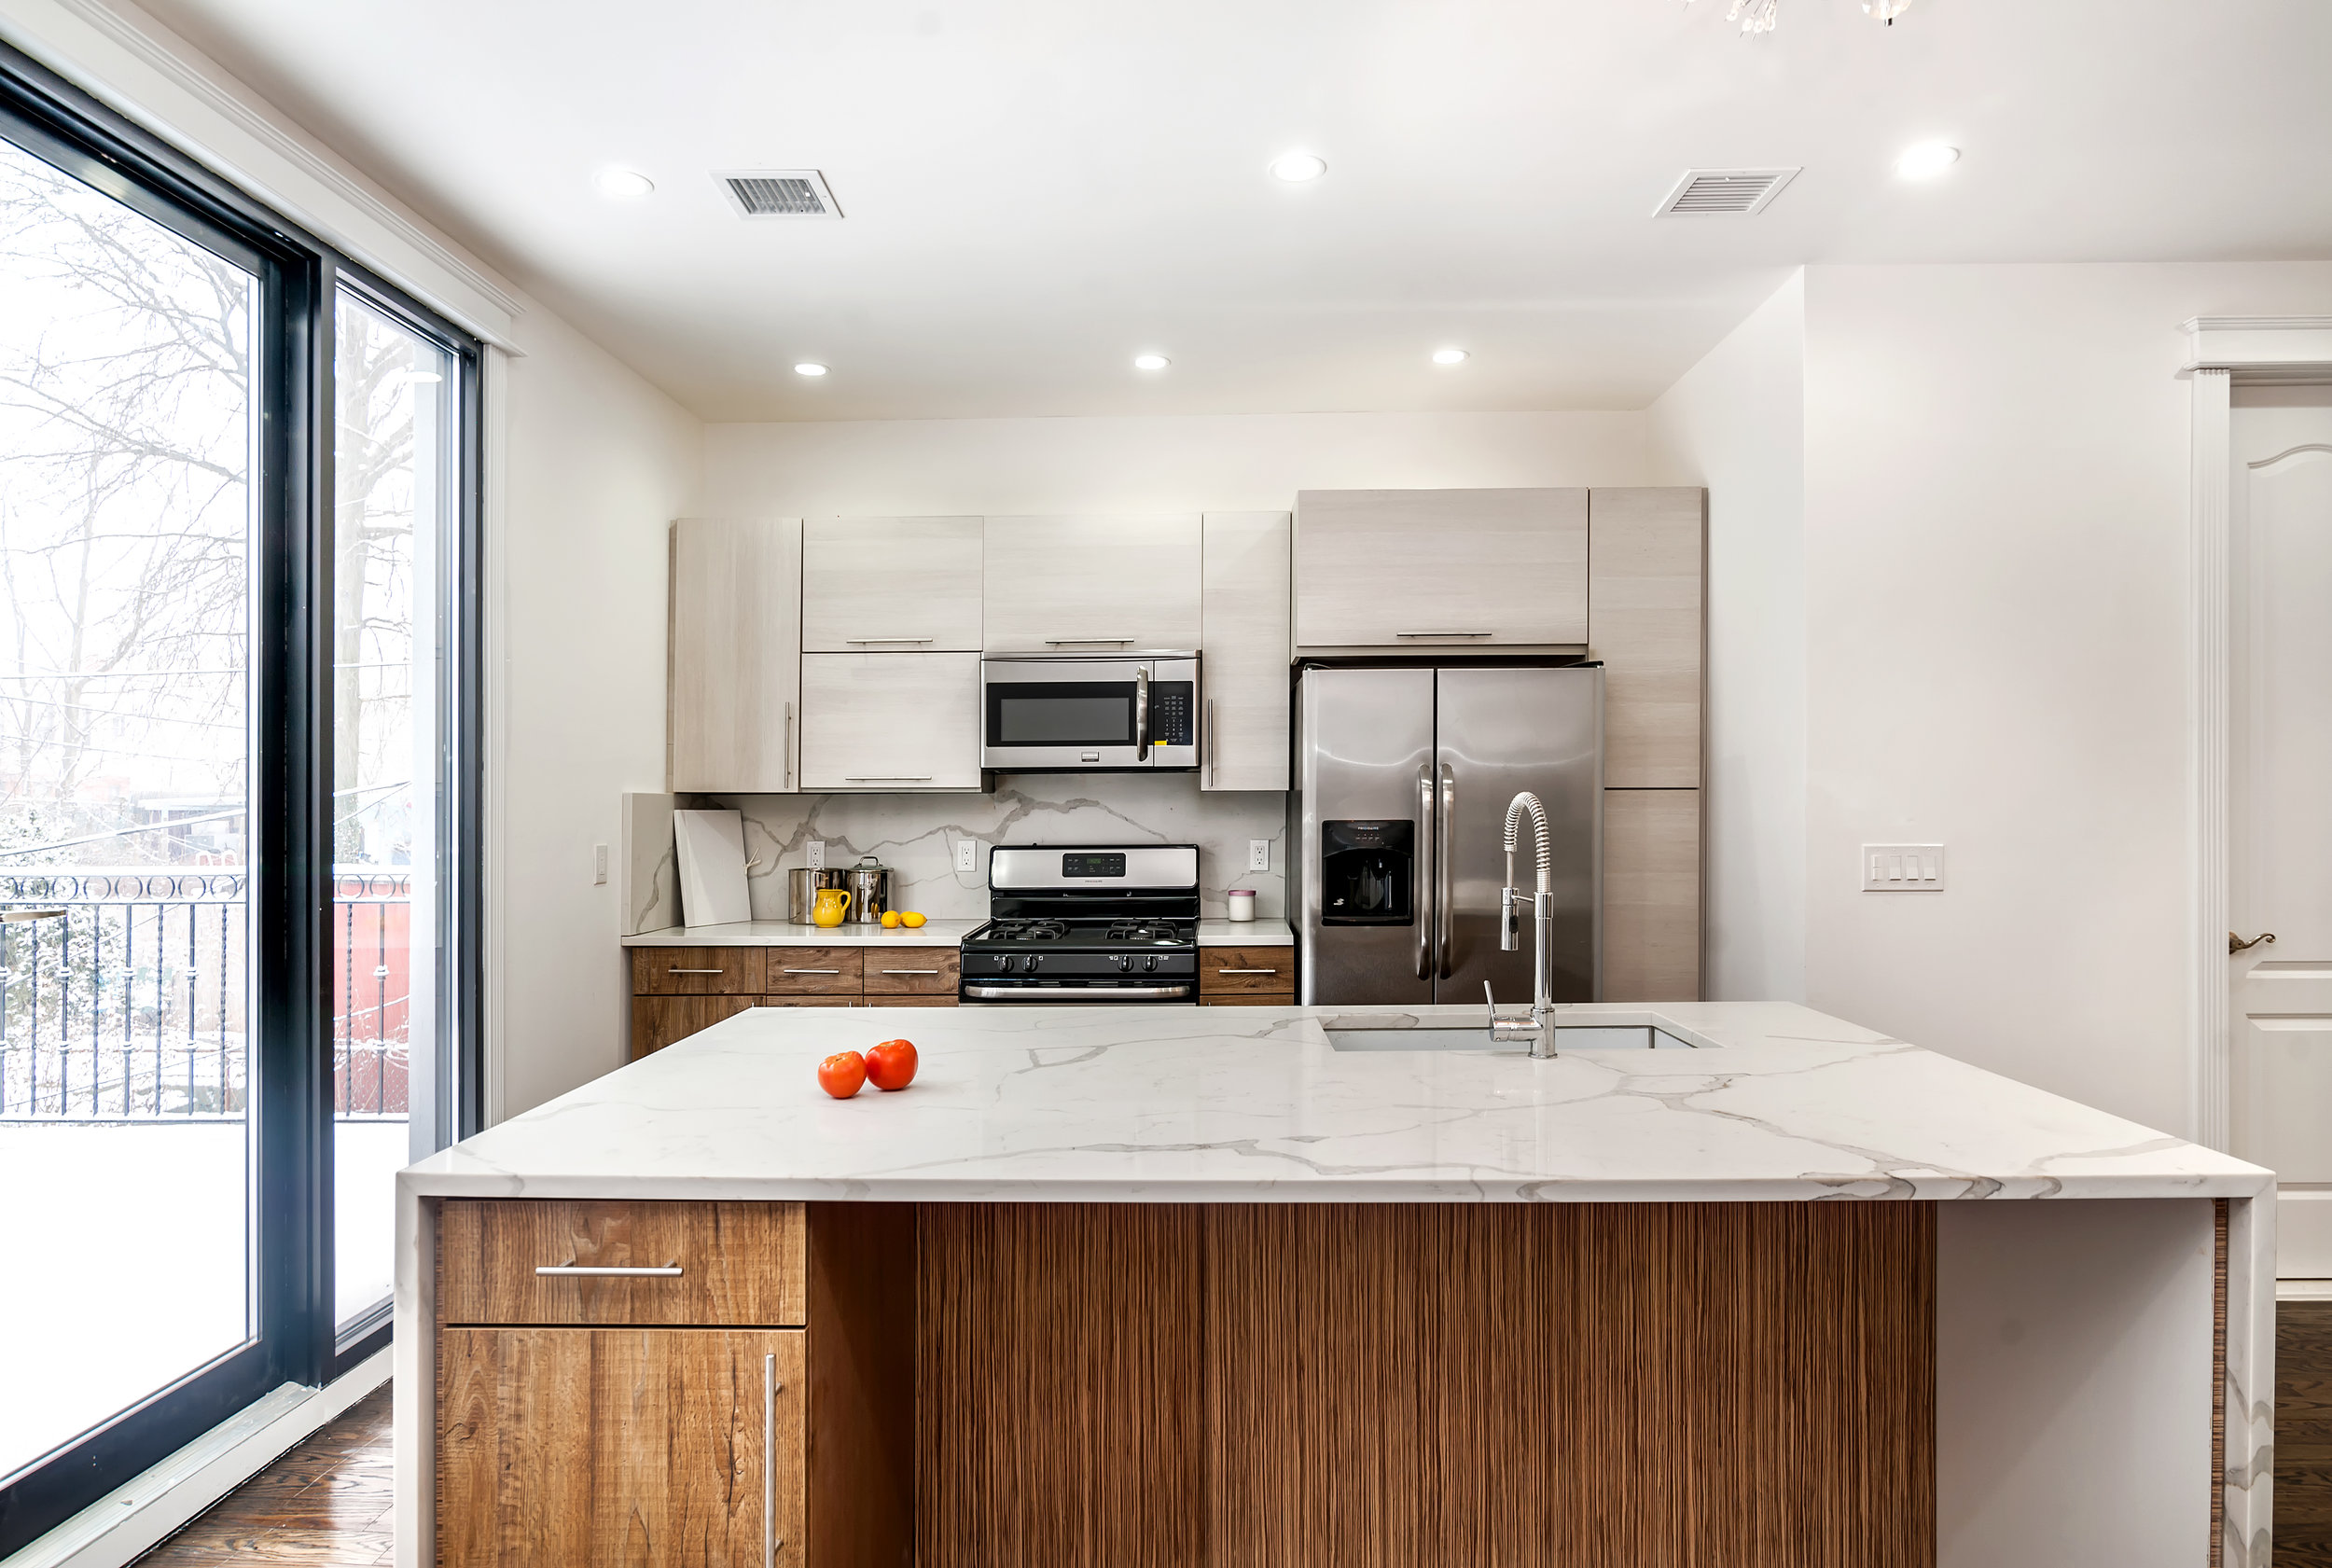 $1,175,000 5.0 BD | 4.0 BA | 3,150 SF   Crown Heights  1346 Prospect Place